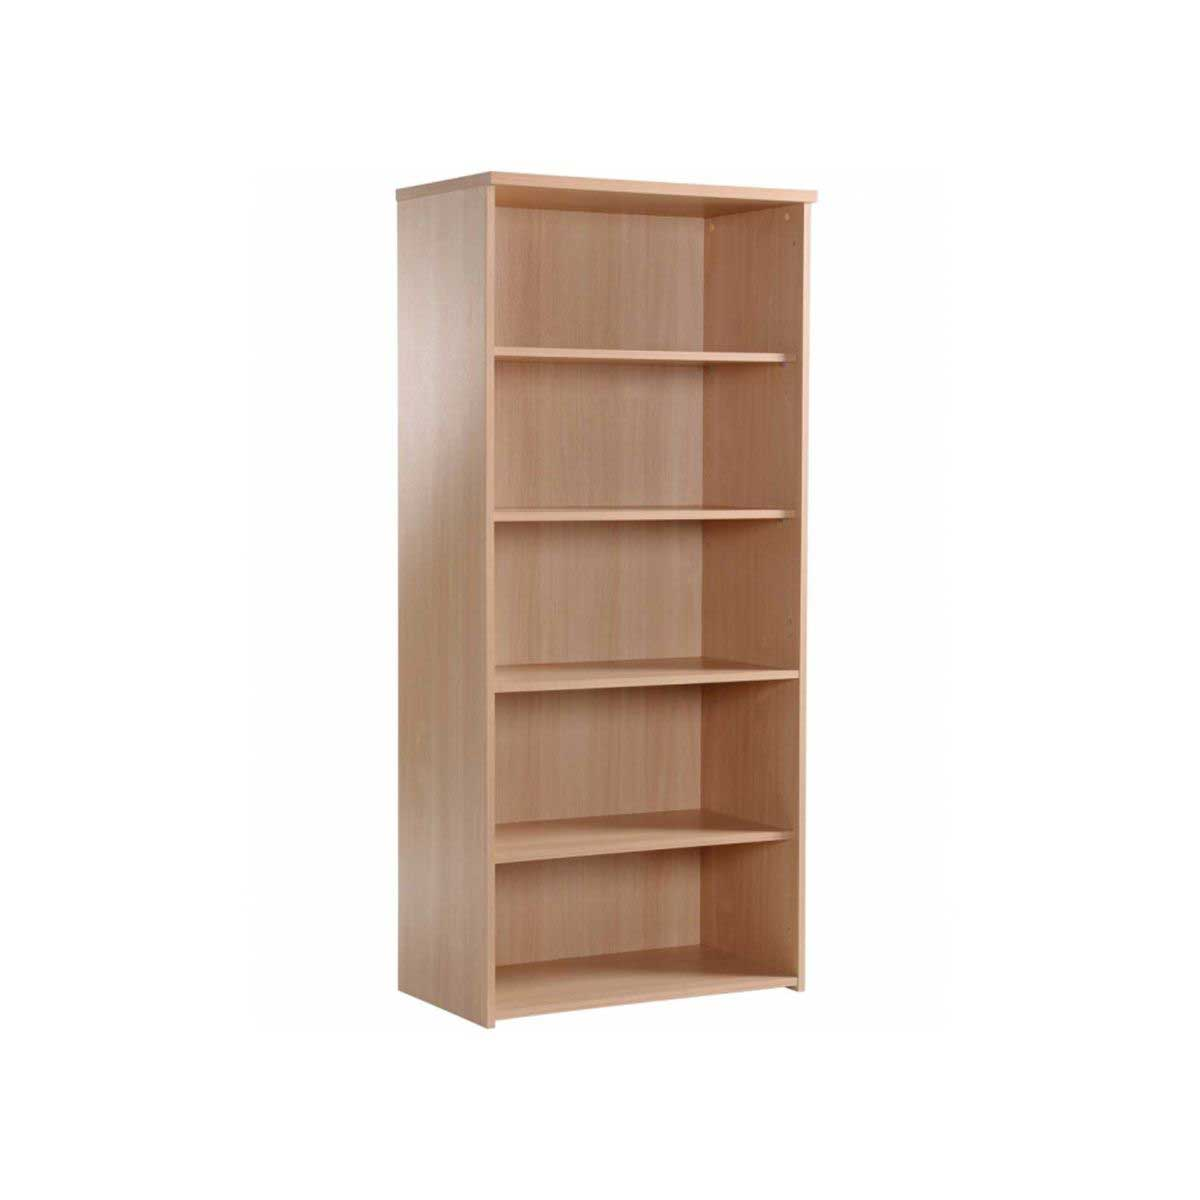 Momento Tall Bookcase 5 Shelf, Woodland Beech